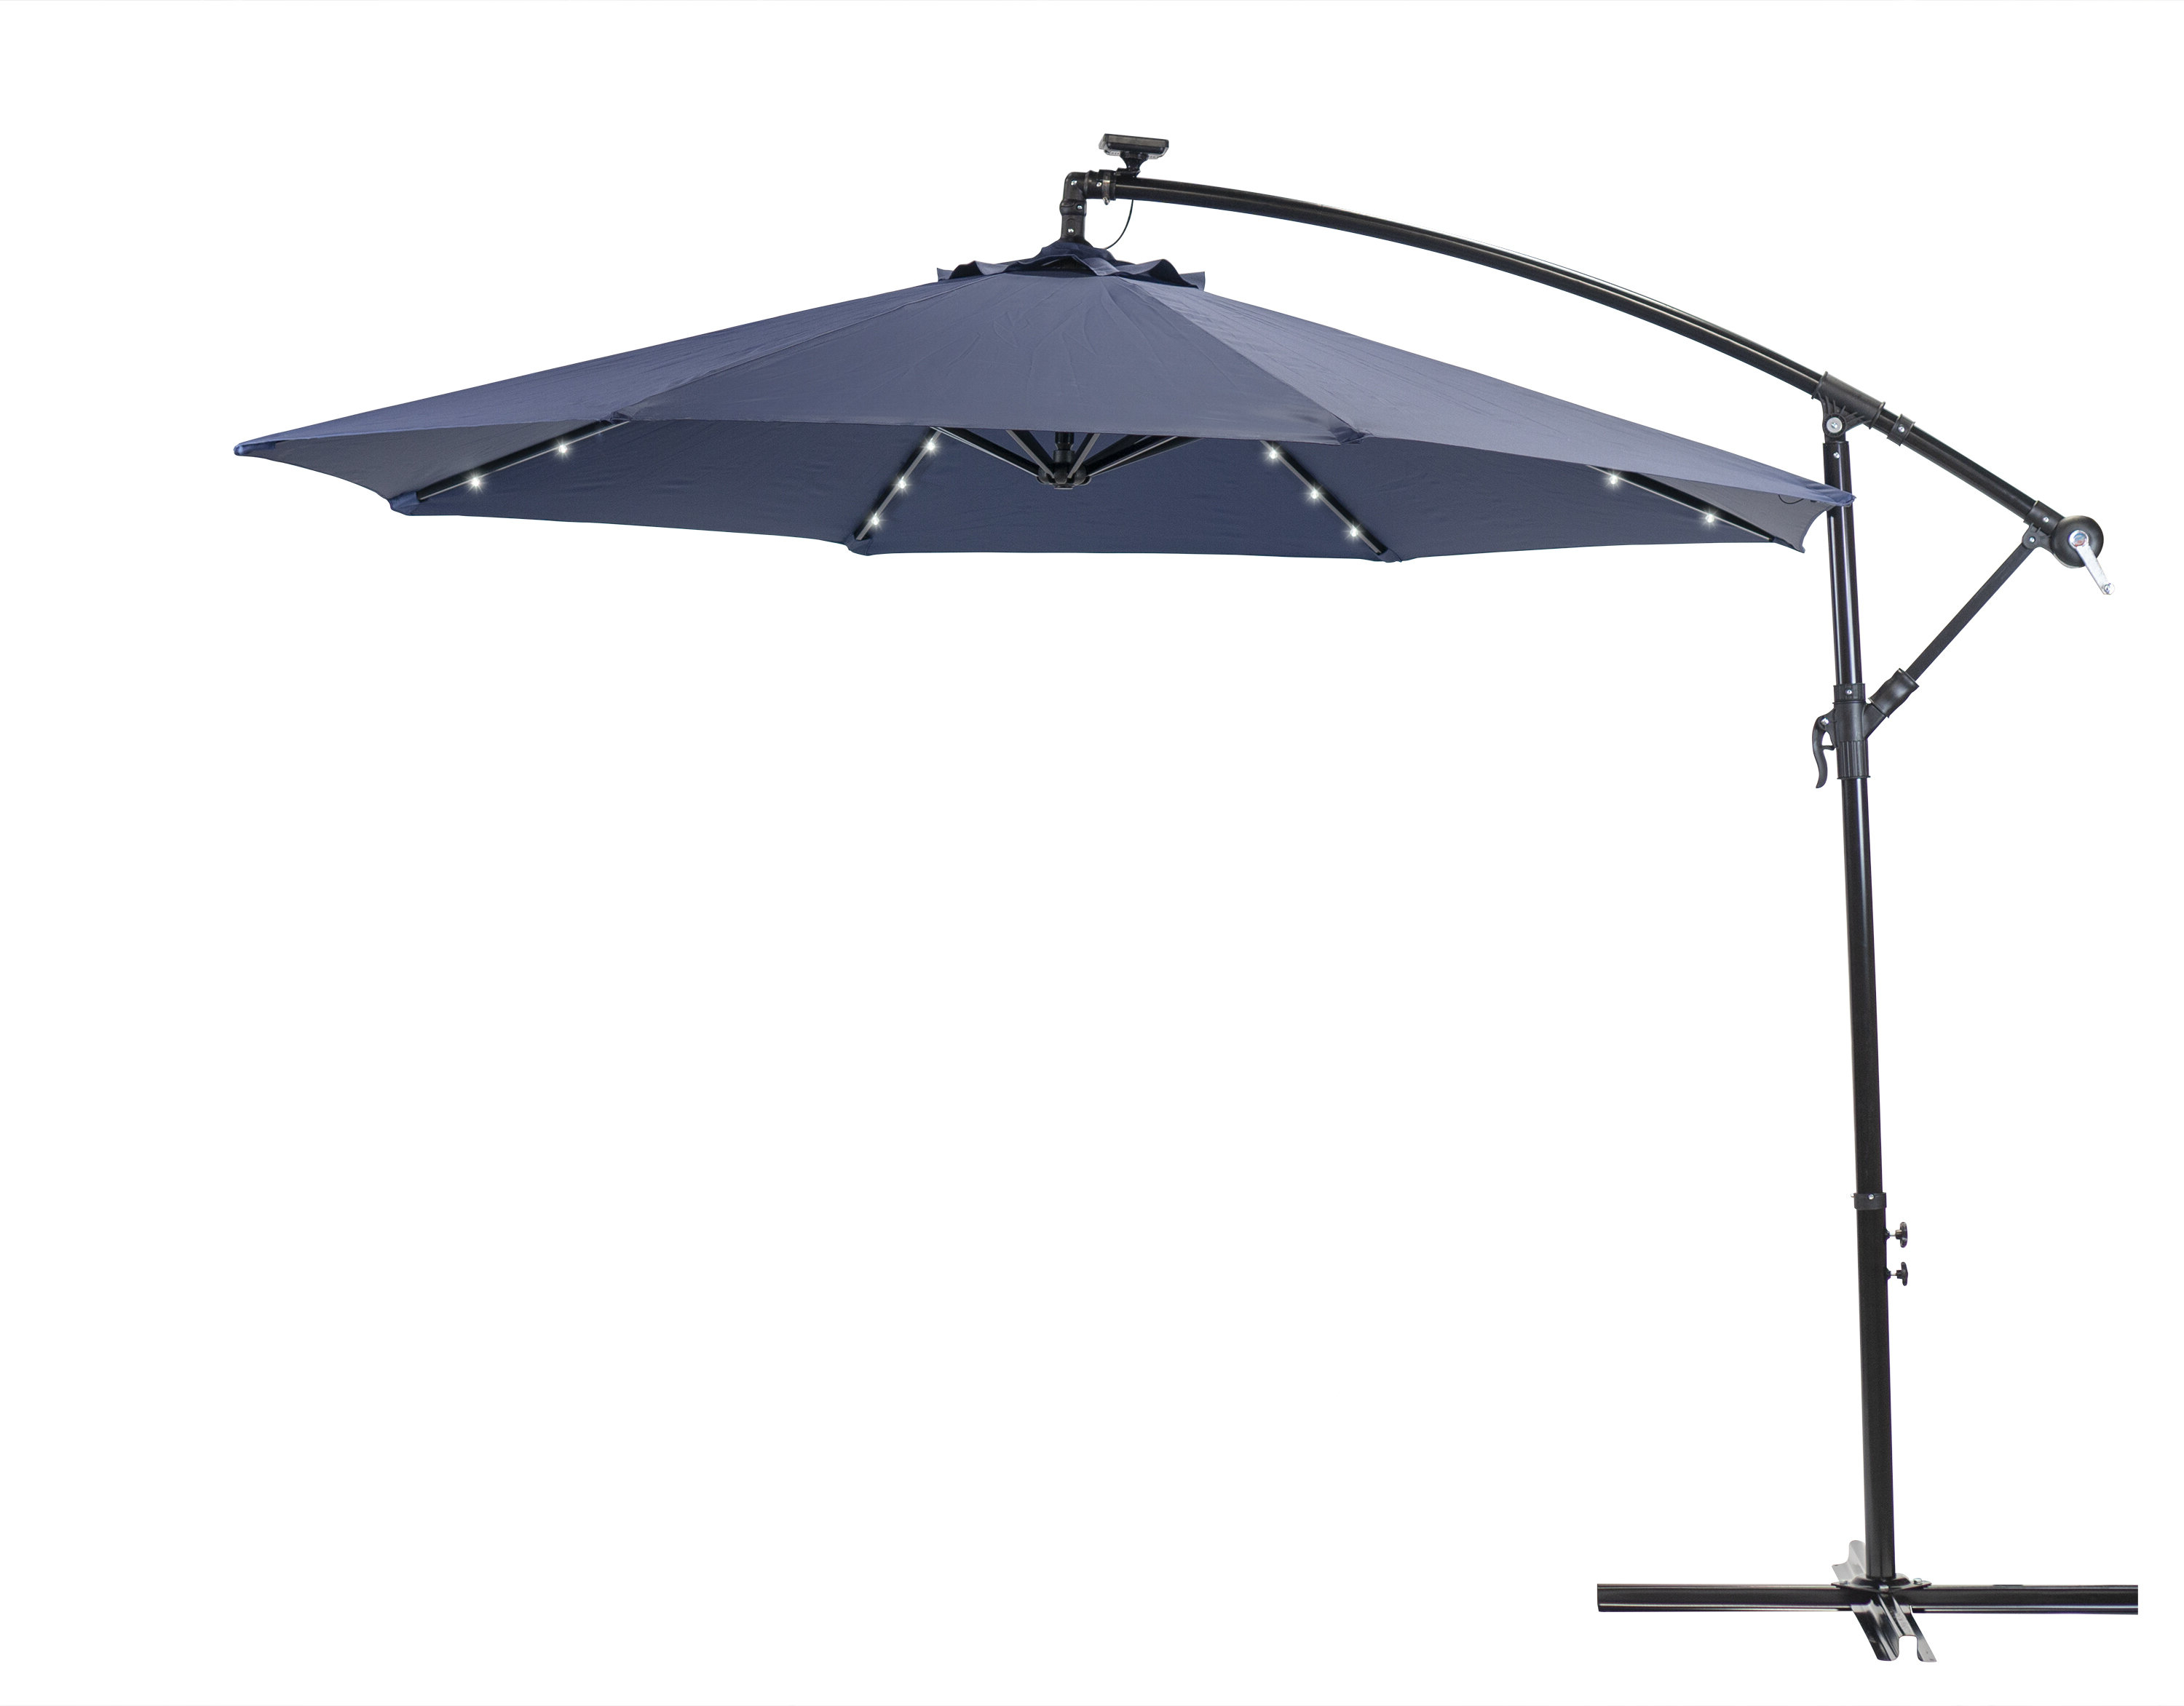 2020 Elaina Cantilever Umbrellas With Regard To Sun Ray Solar 10' Cantilever Umbrella (View 2 of 20)